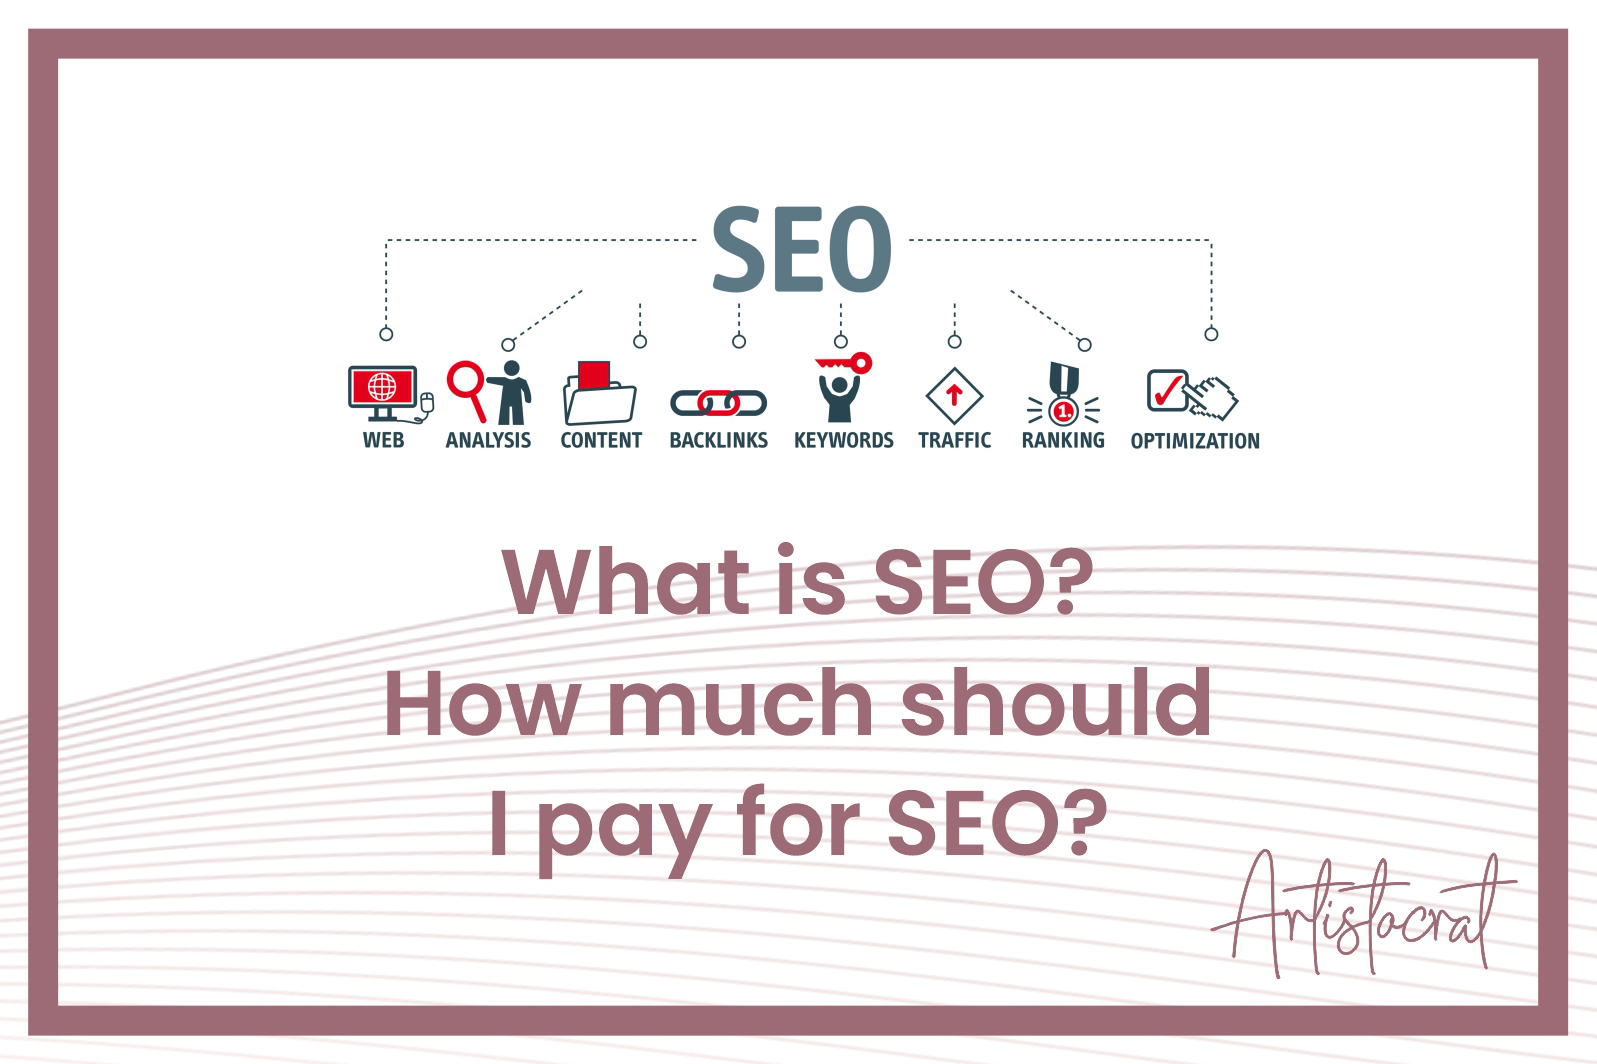 What-is-SEO-How-Much-Should-I-pay-SEO